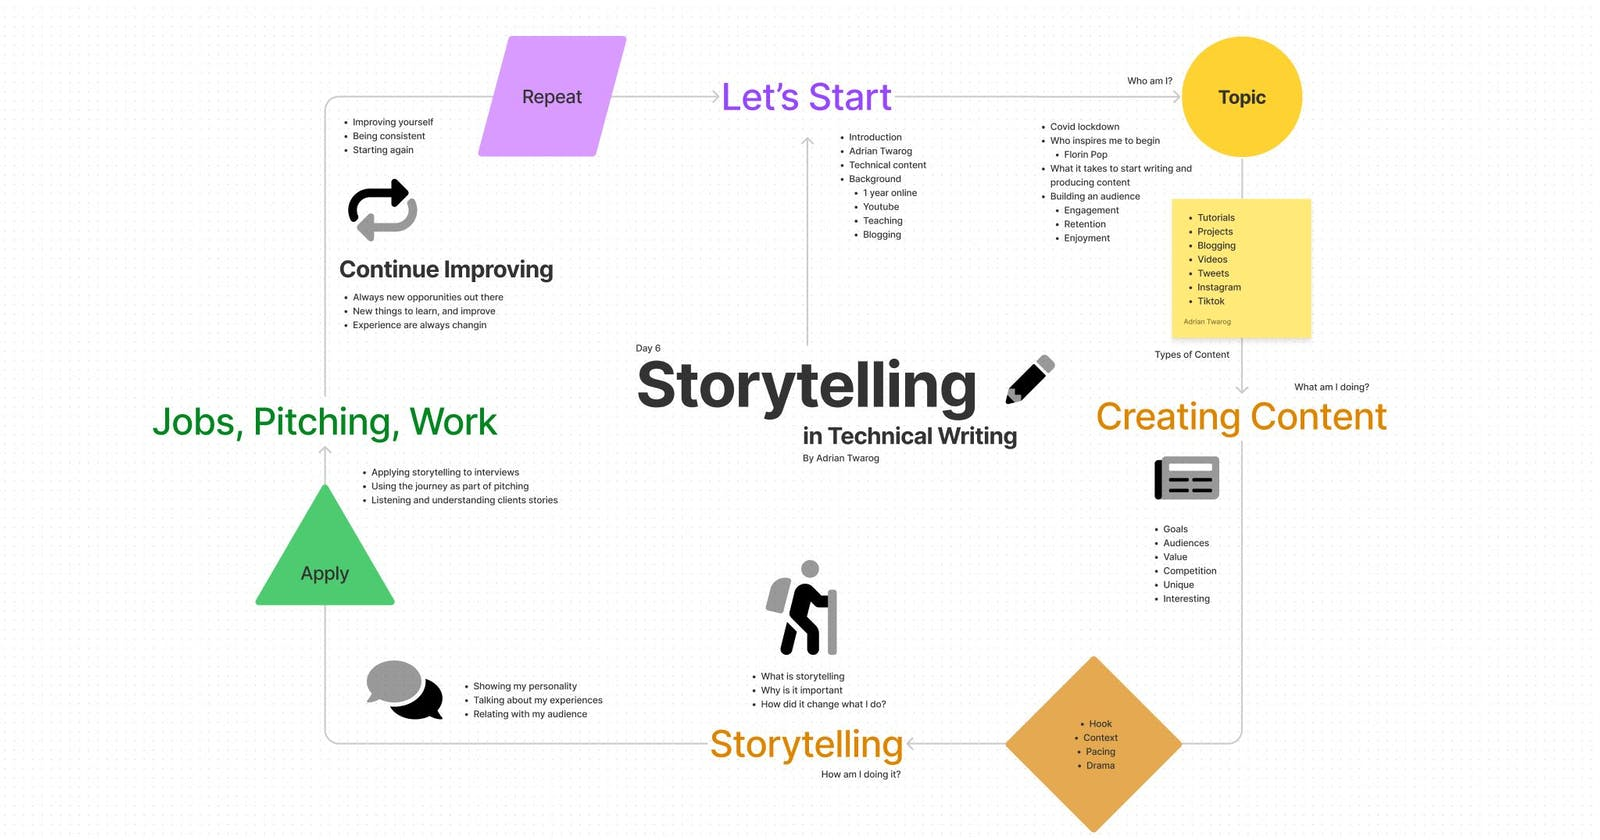 Storytelling in Technical Writing